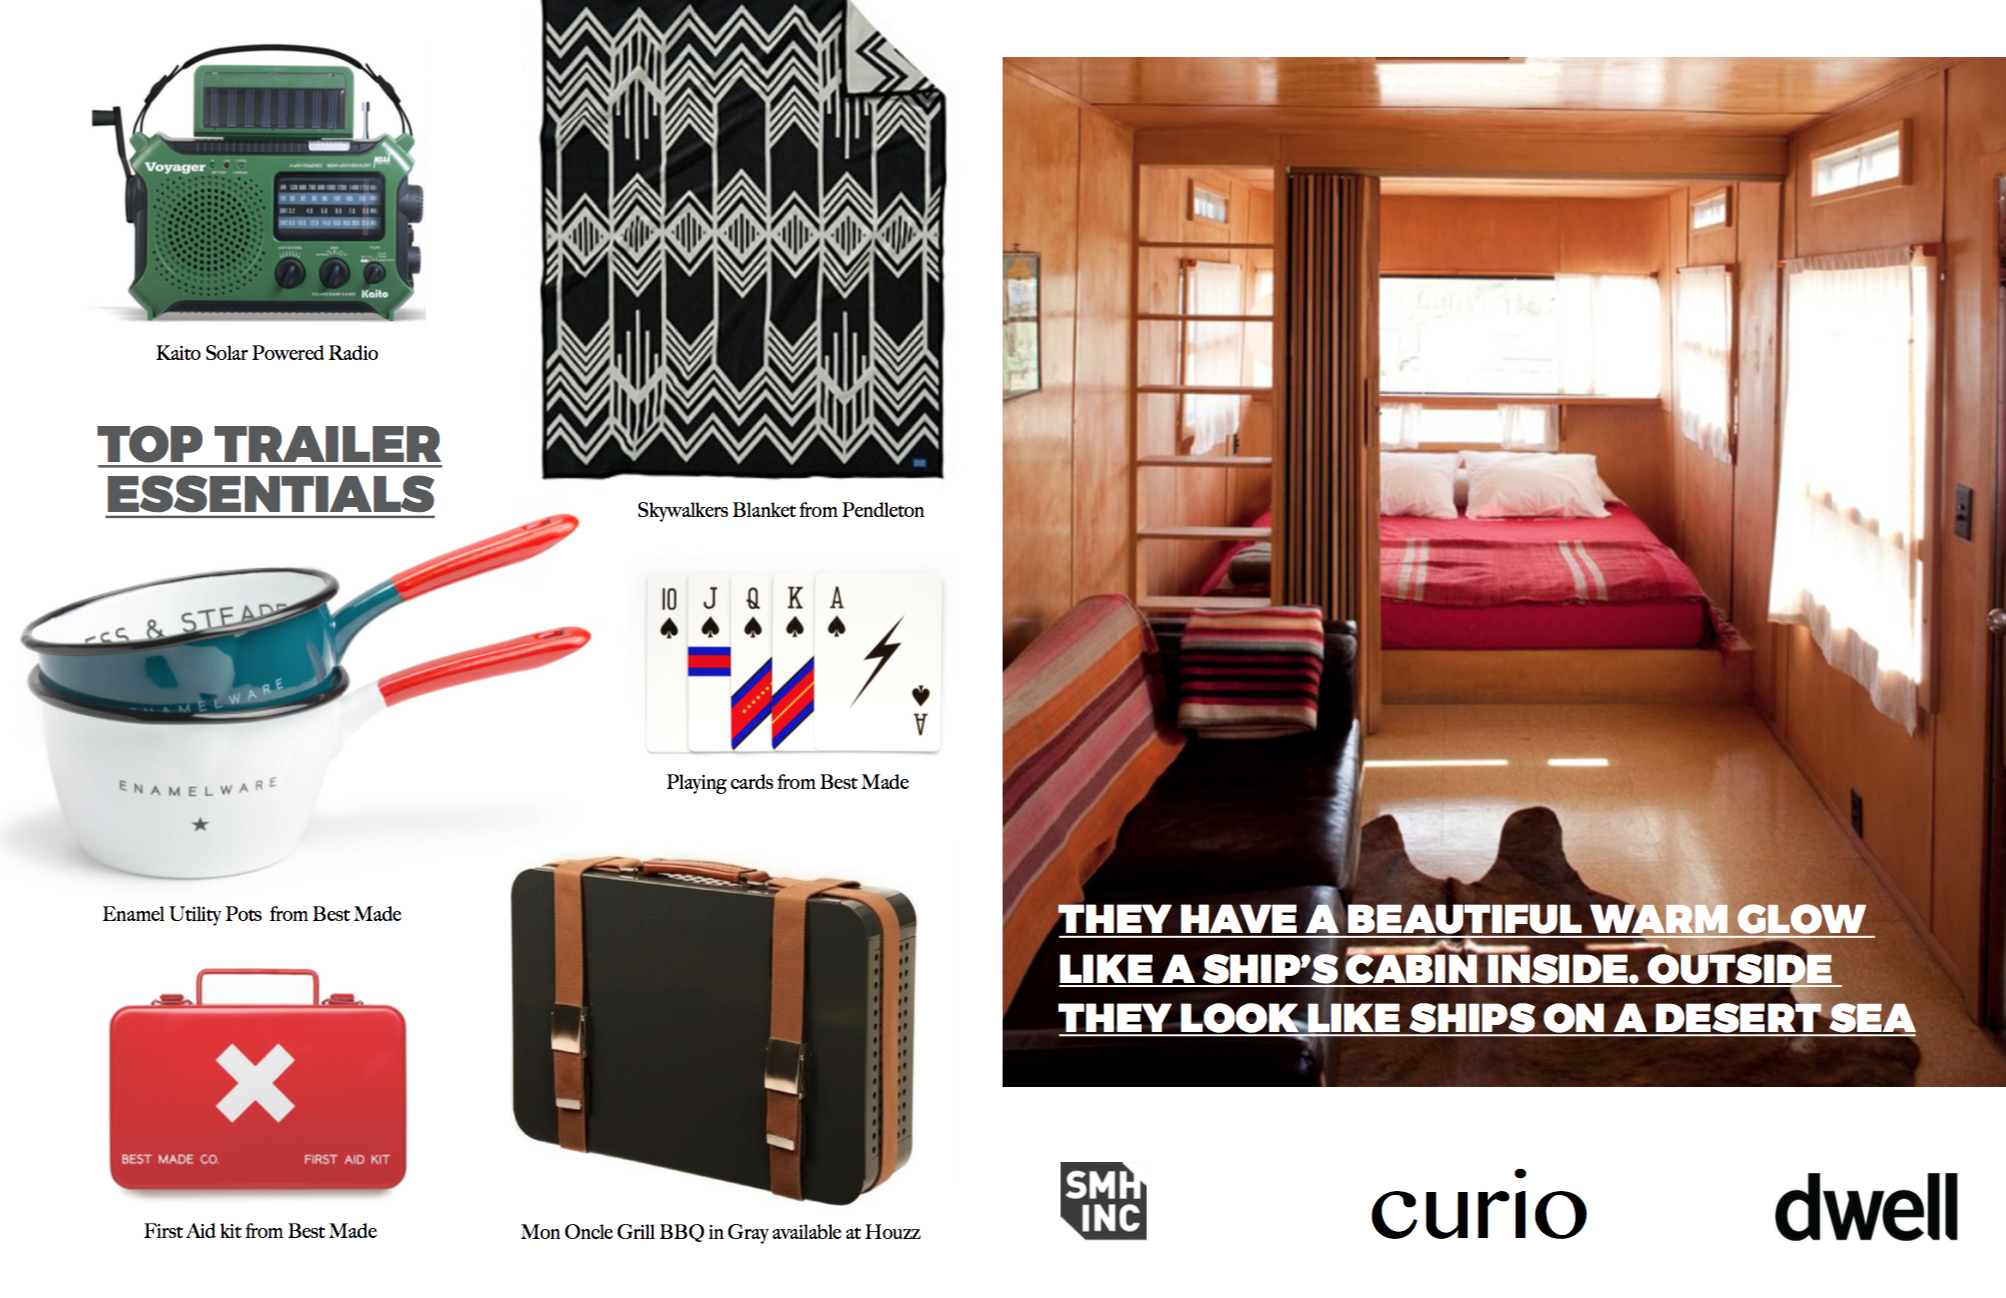 Left: More suggestions from SMH, Inc for cool camping products. Right: Interiors of a trailer at  Hotel El Cosmico in Marfa/ Texas. This picture first appeared in Hotels we Love at the  Dwell website .